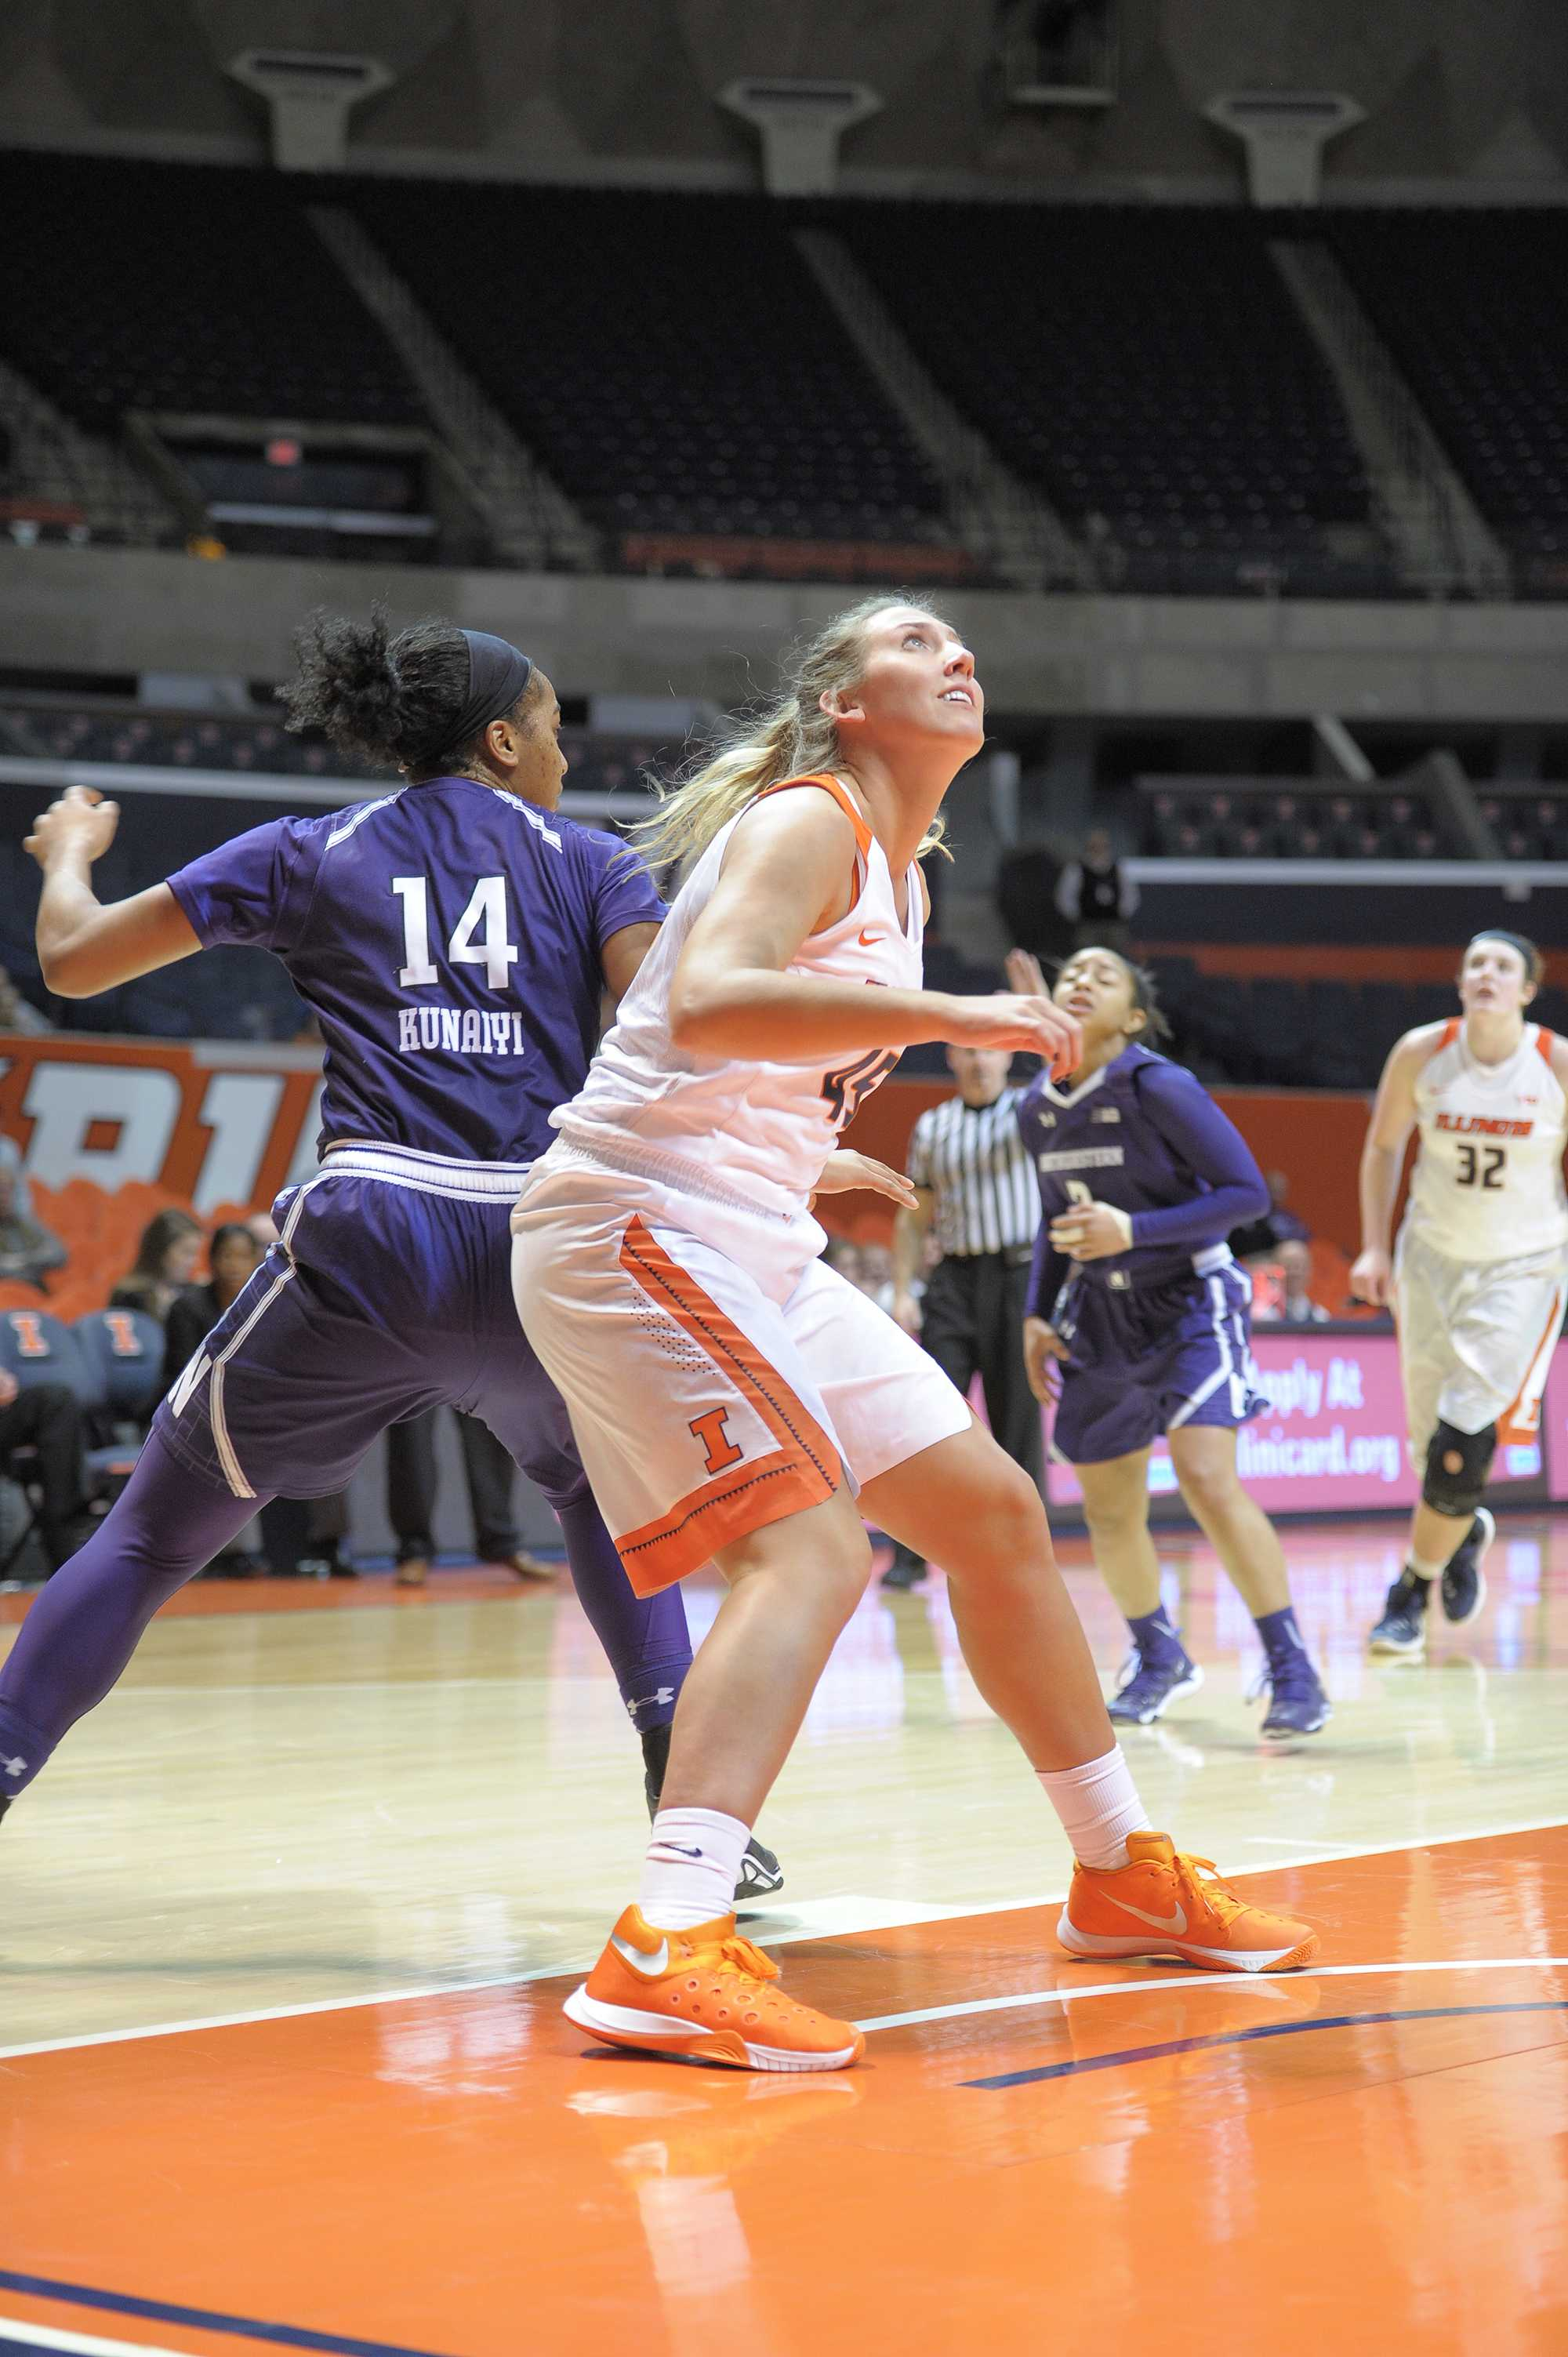 Former+Illinois+volleyball+player+Alexis+Viliunas+added+energy+and+excitement+in+her+first+and+only+season+on+the+Illinois+women%E2%80%99s+basketball+team.